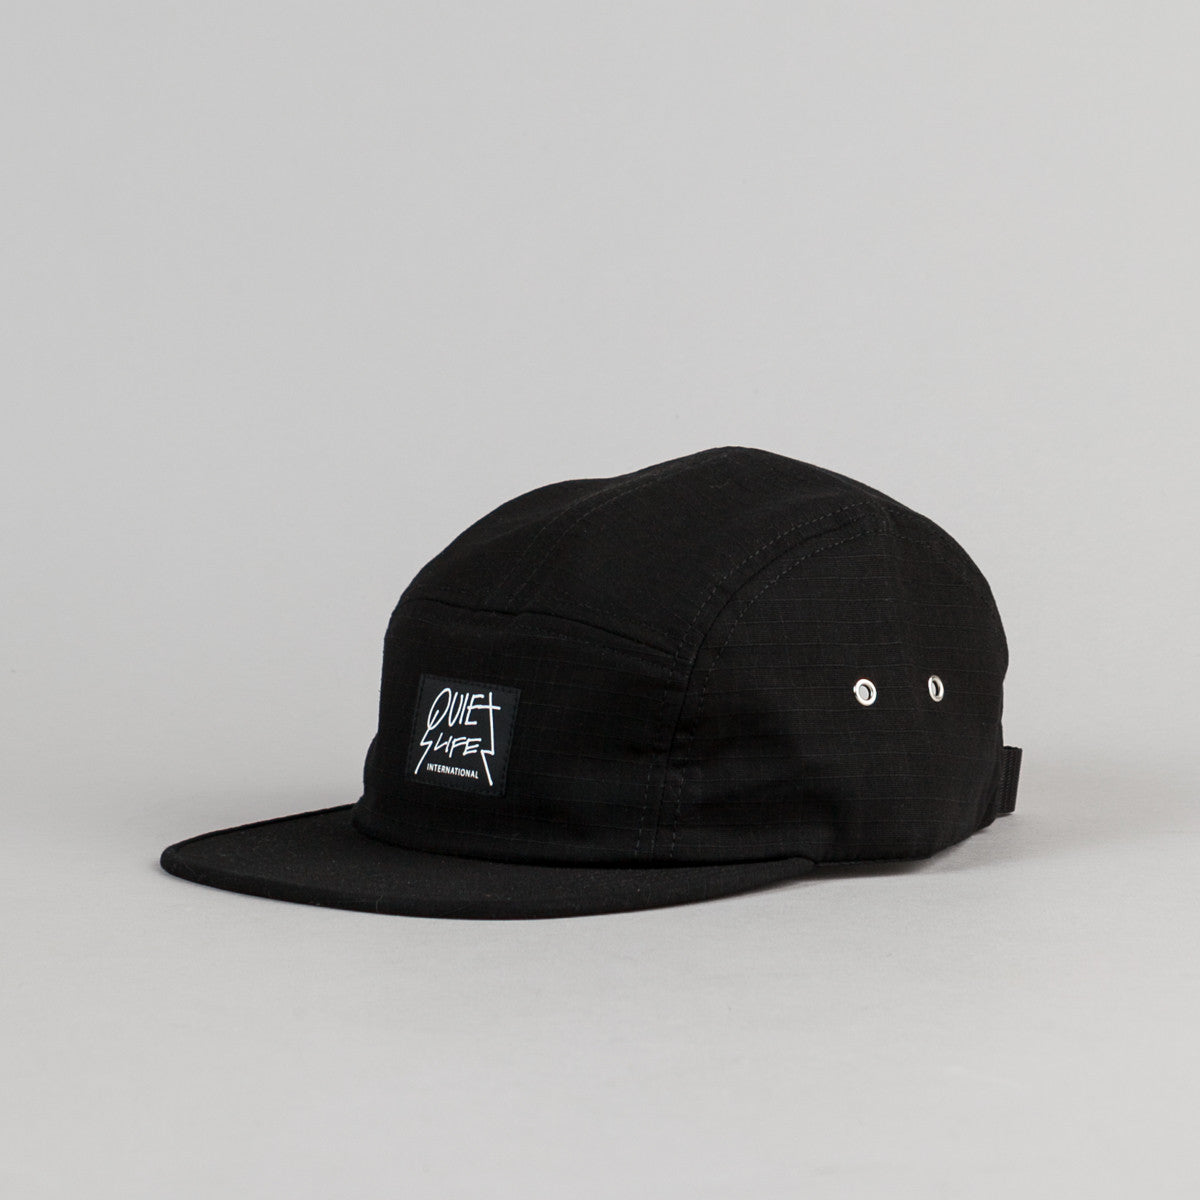 The Quiet Life International 5 Panel Cap - Black